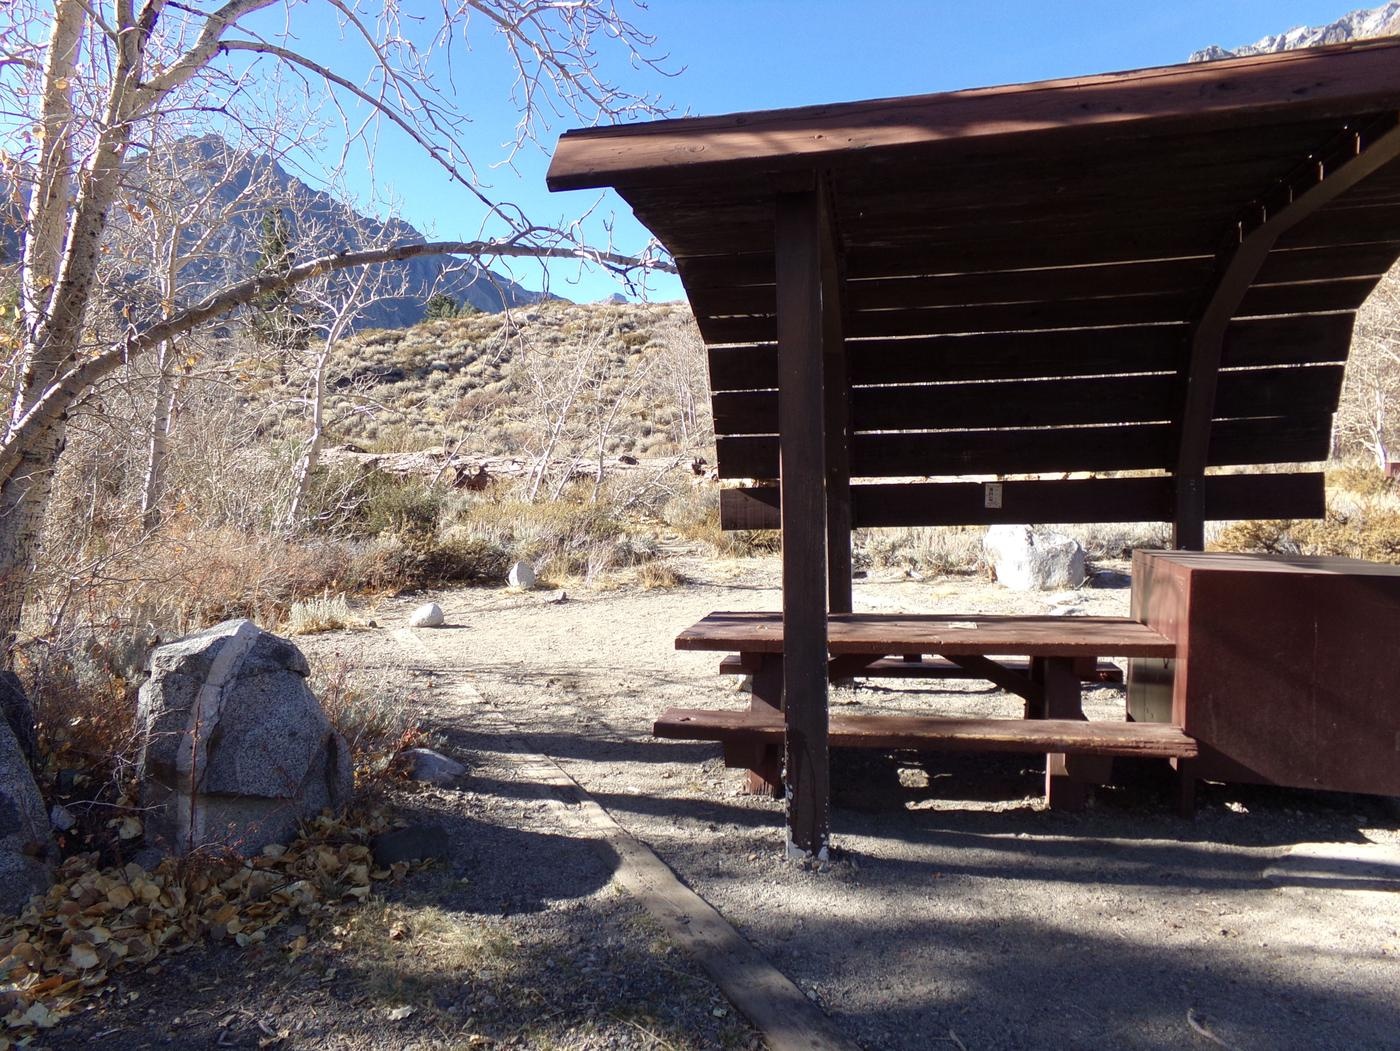 McGee Creek Campground site #26 featuring shaded picnic area with fire pit and camping space.